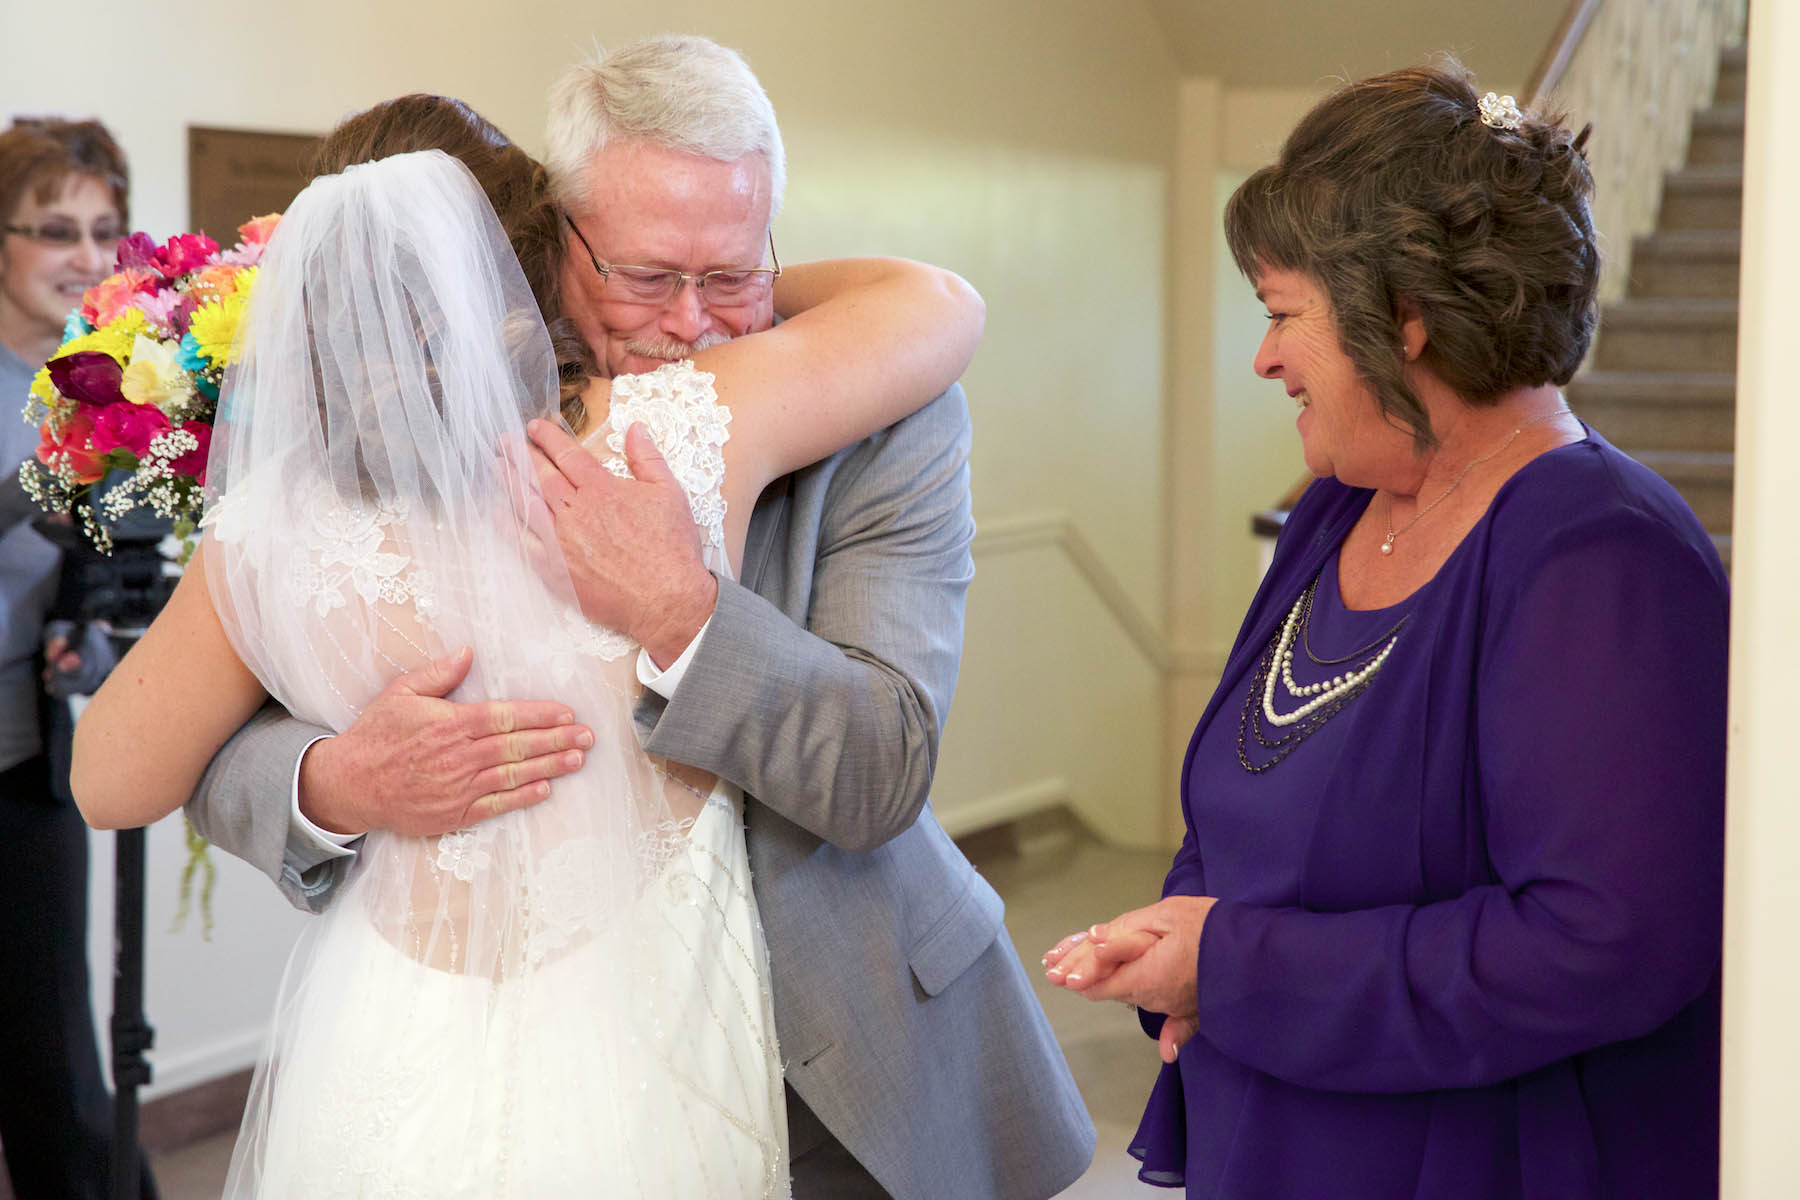 John hugs Alissa after seeing her in her wedding dress. Wedding pictures by Tiffany & Steve of Warmowski Photography.